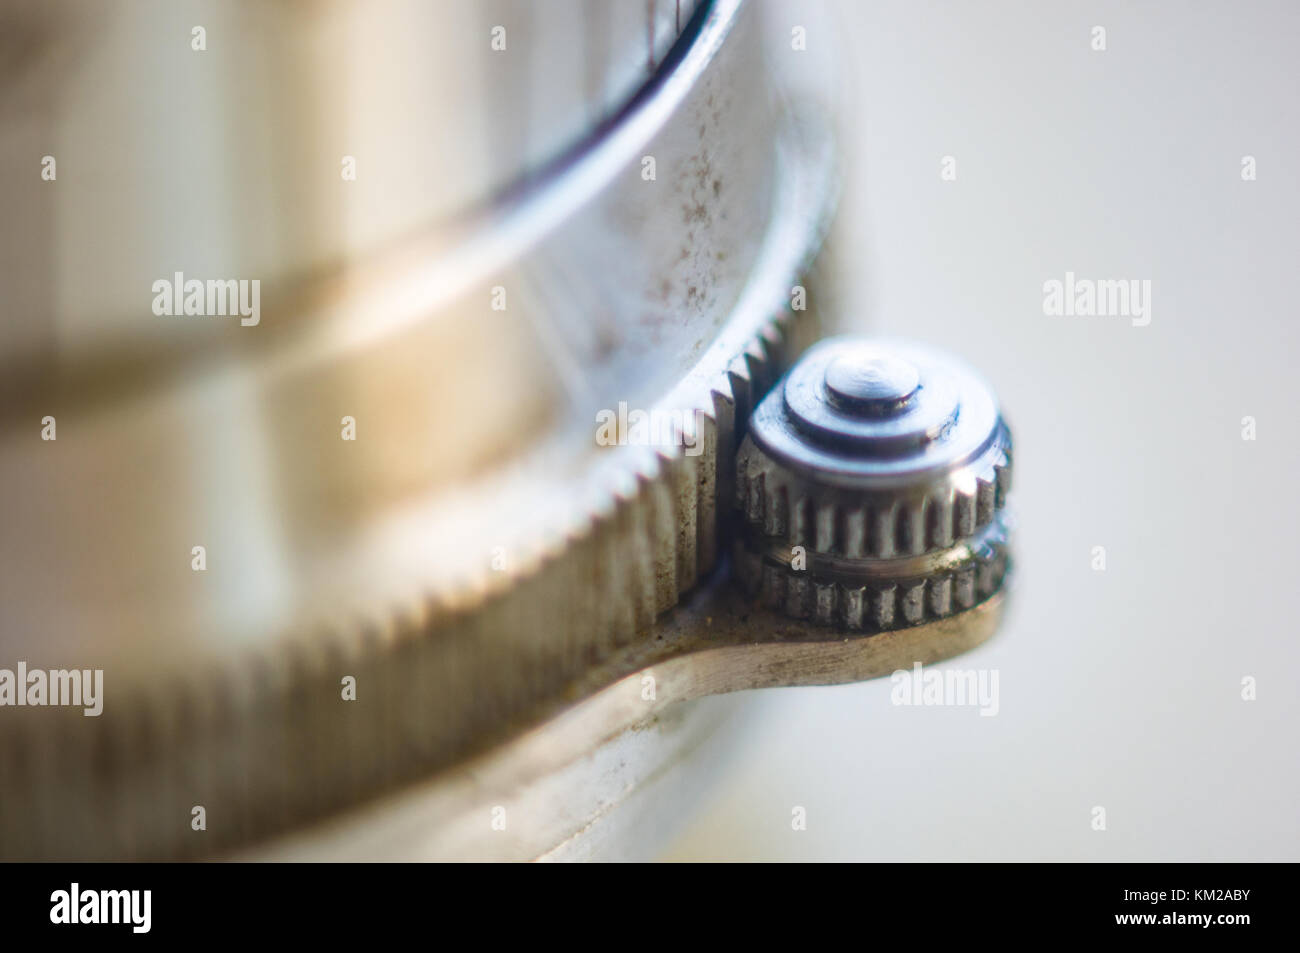 elements of manual vintage lenses close up macro stock photo rh alamy com Close-Up Photography Tumblr Still Life Photography